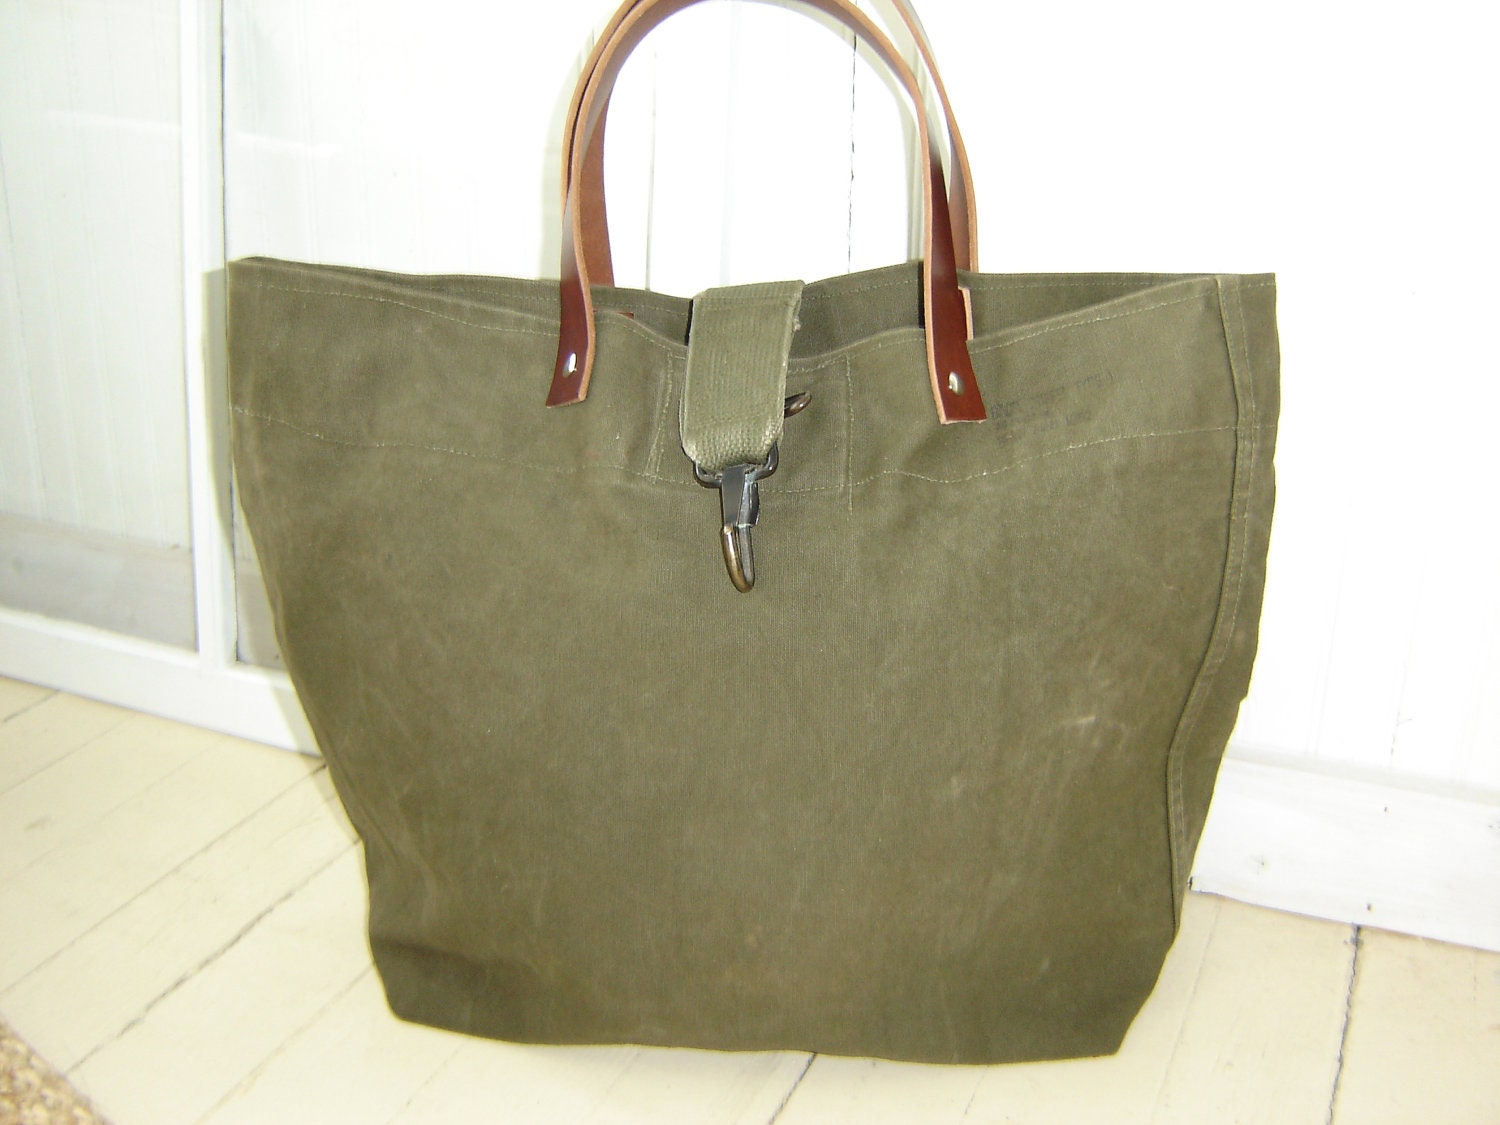 Recycled Military Bag Waxed Canvas Tote Weekender Travel Bag